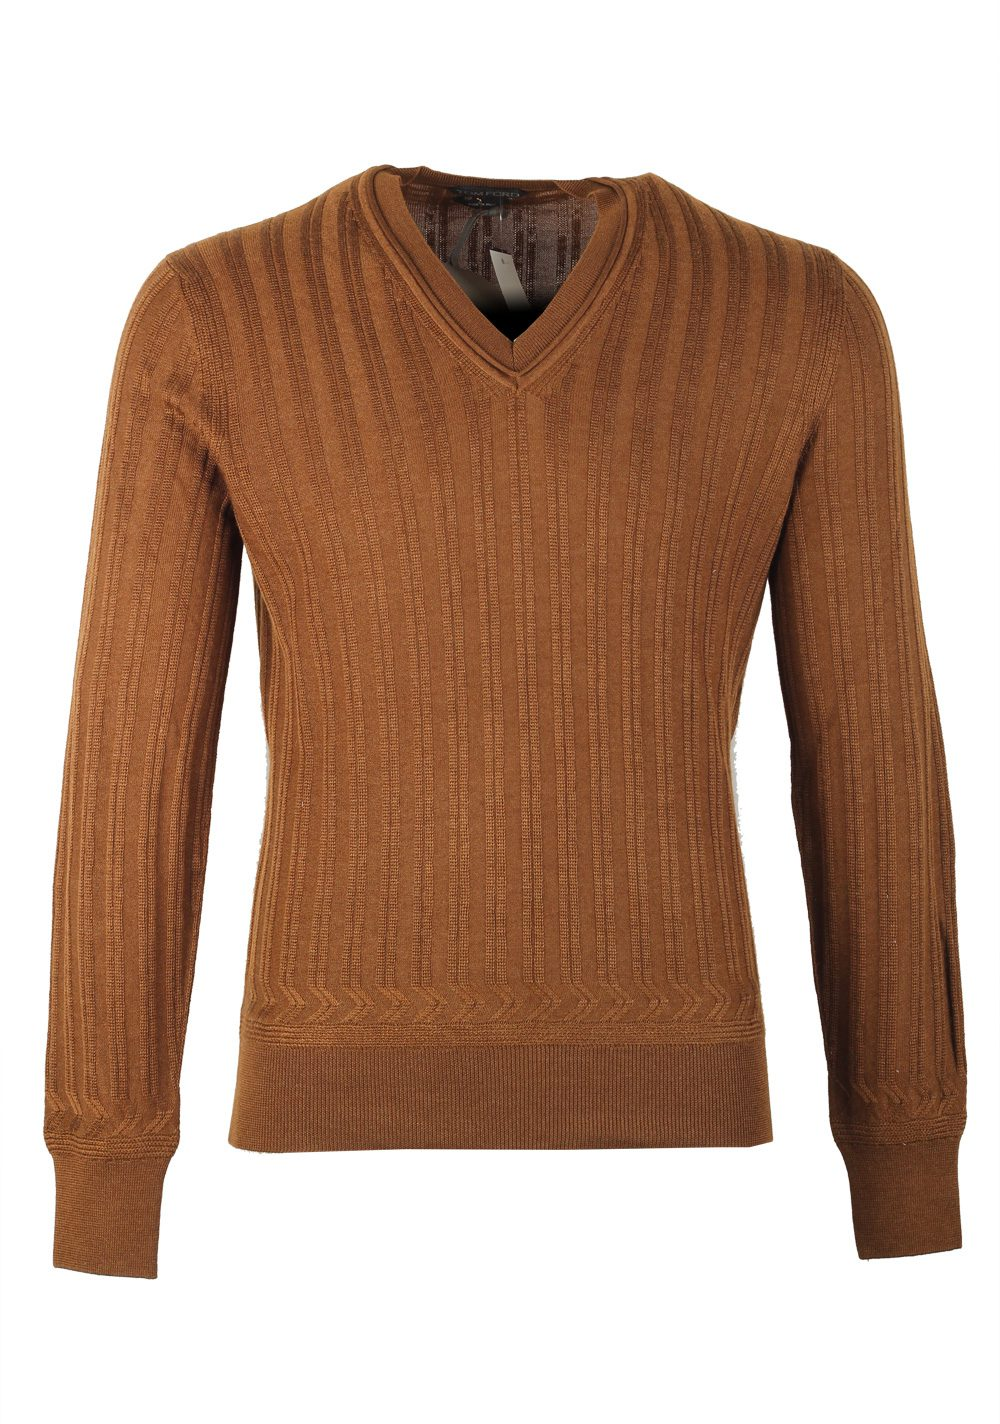 TOM FORD Brown V Neck Sweater Size 48 / 38R U.S. In Cotton Silk | Costume Limité